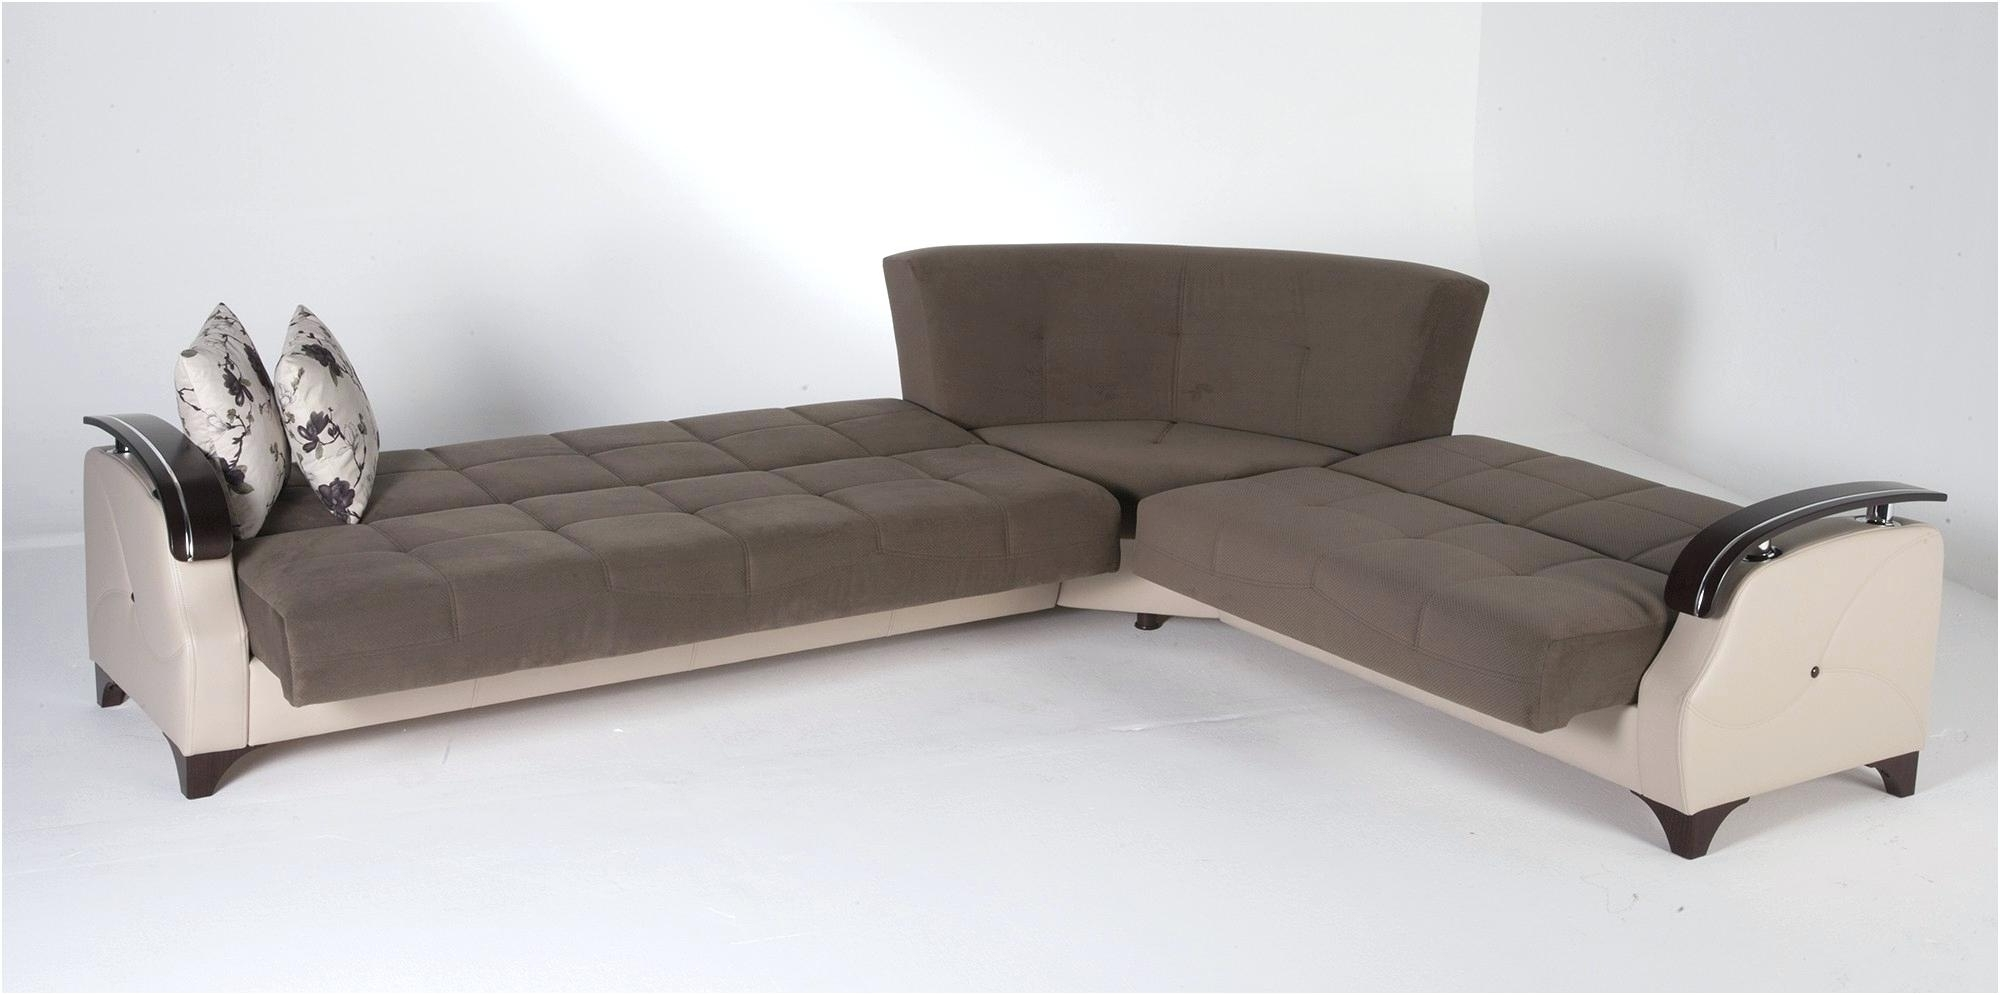 Chaise Sleepers Intended For 2017 Sectional Sofa With Sleeper Sleepers On Sale Couch Queen Kuser (View 13 of 15)